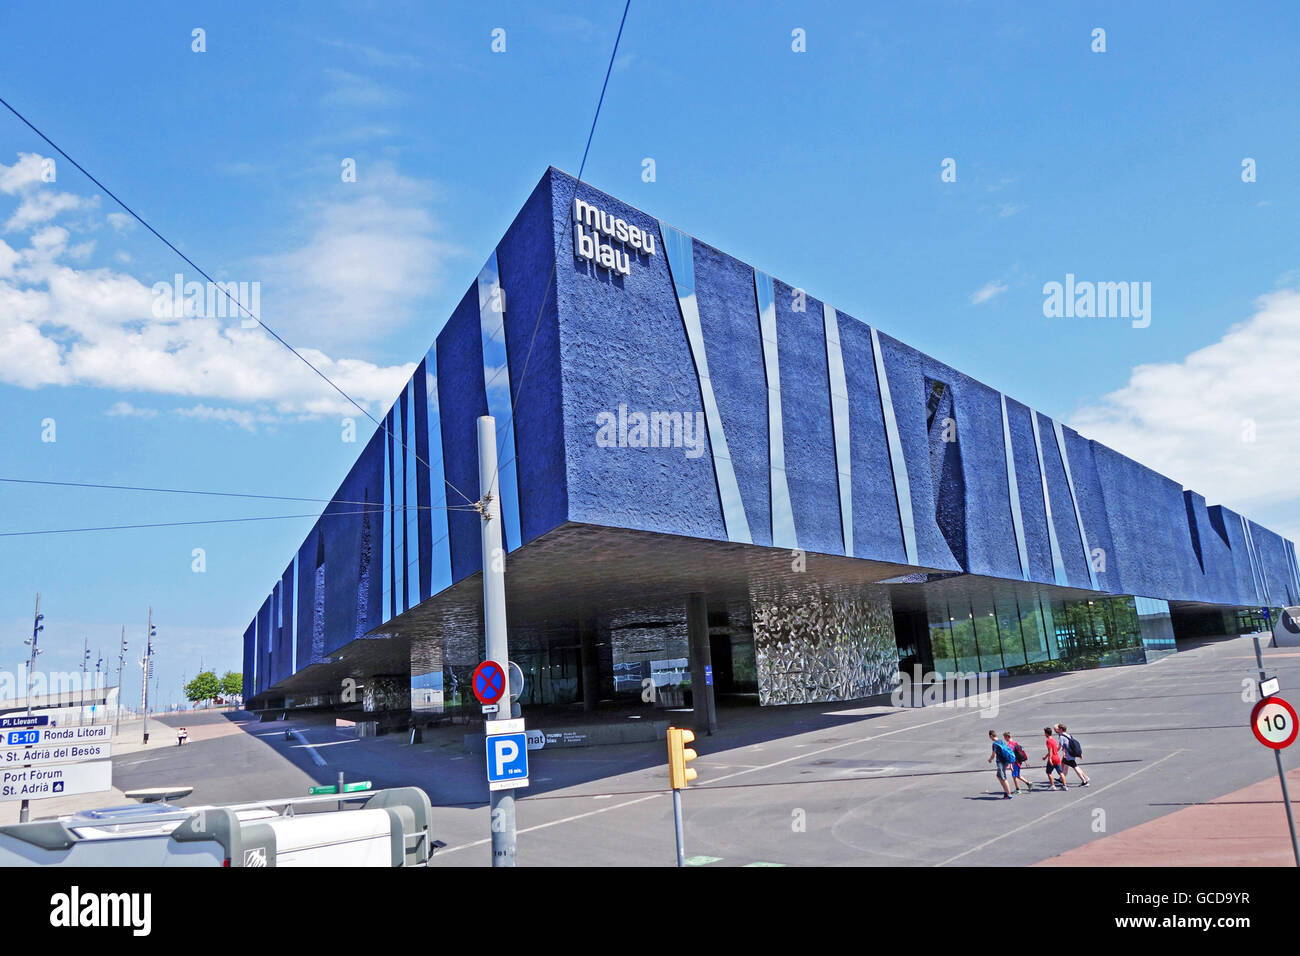 BARCELONA, SPAIN - JULY 31, 2015: The Blue Museum of Natural Sciences (Museu Blau) - an architectural landmark in - Stock Image